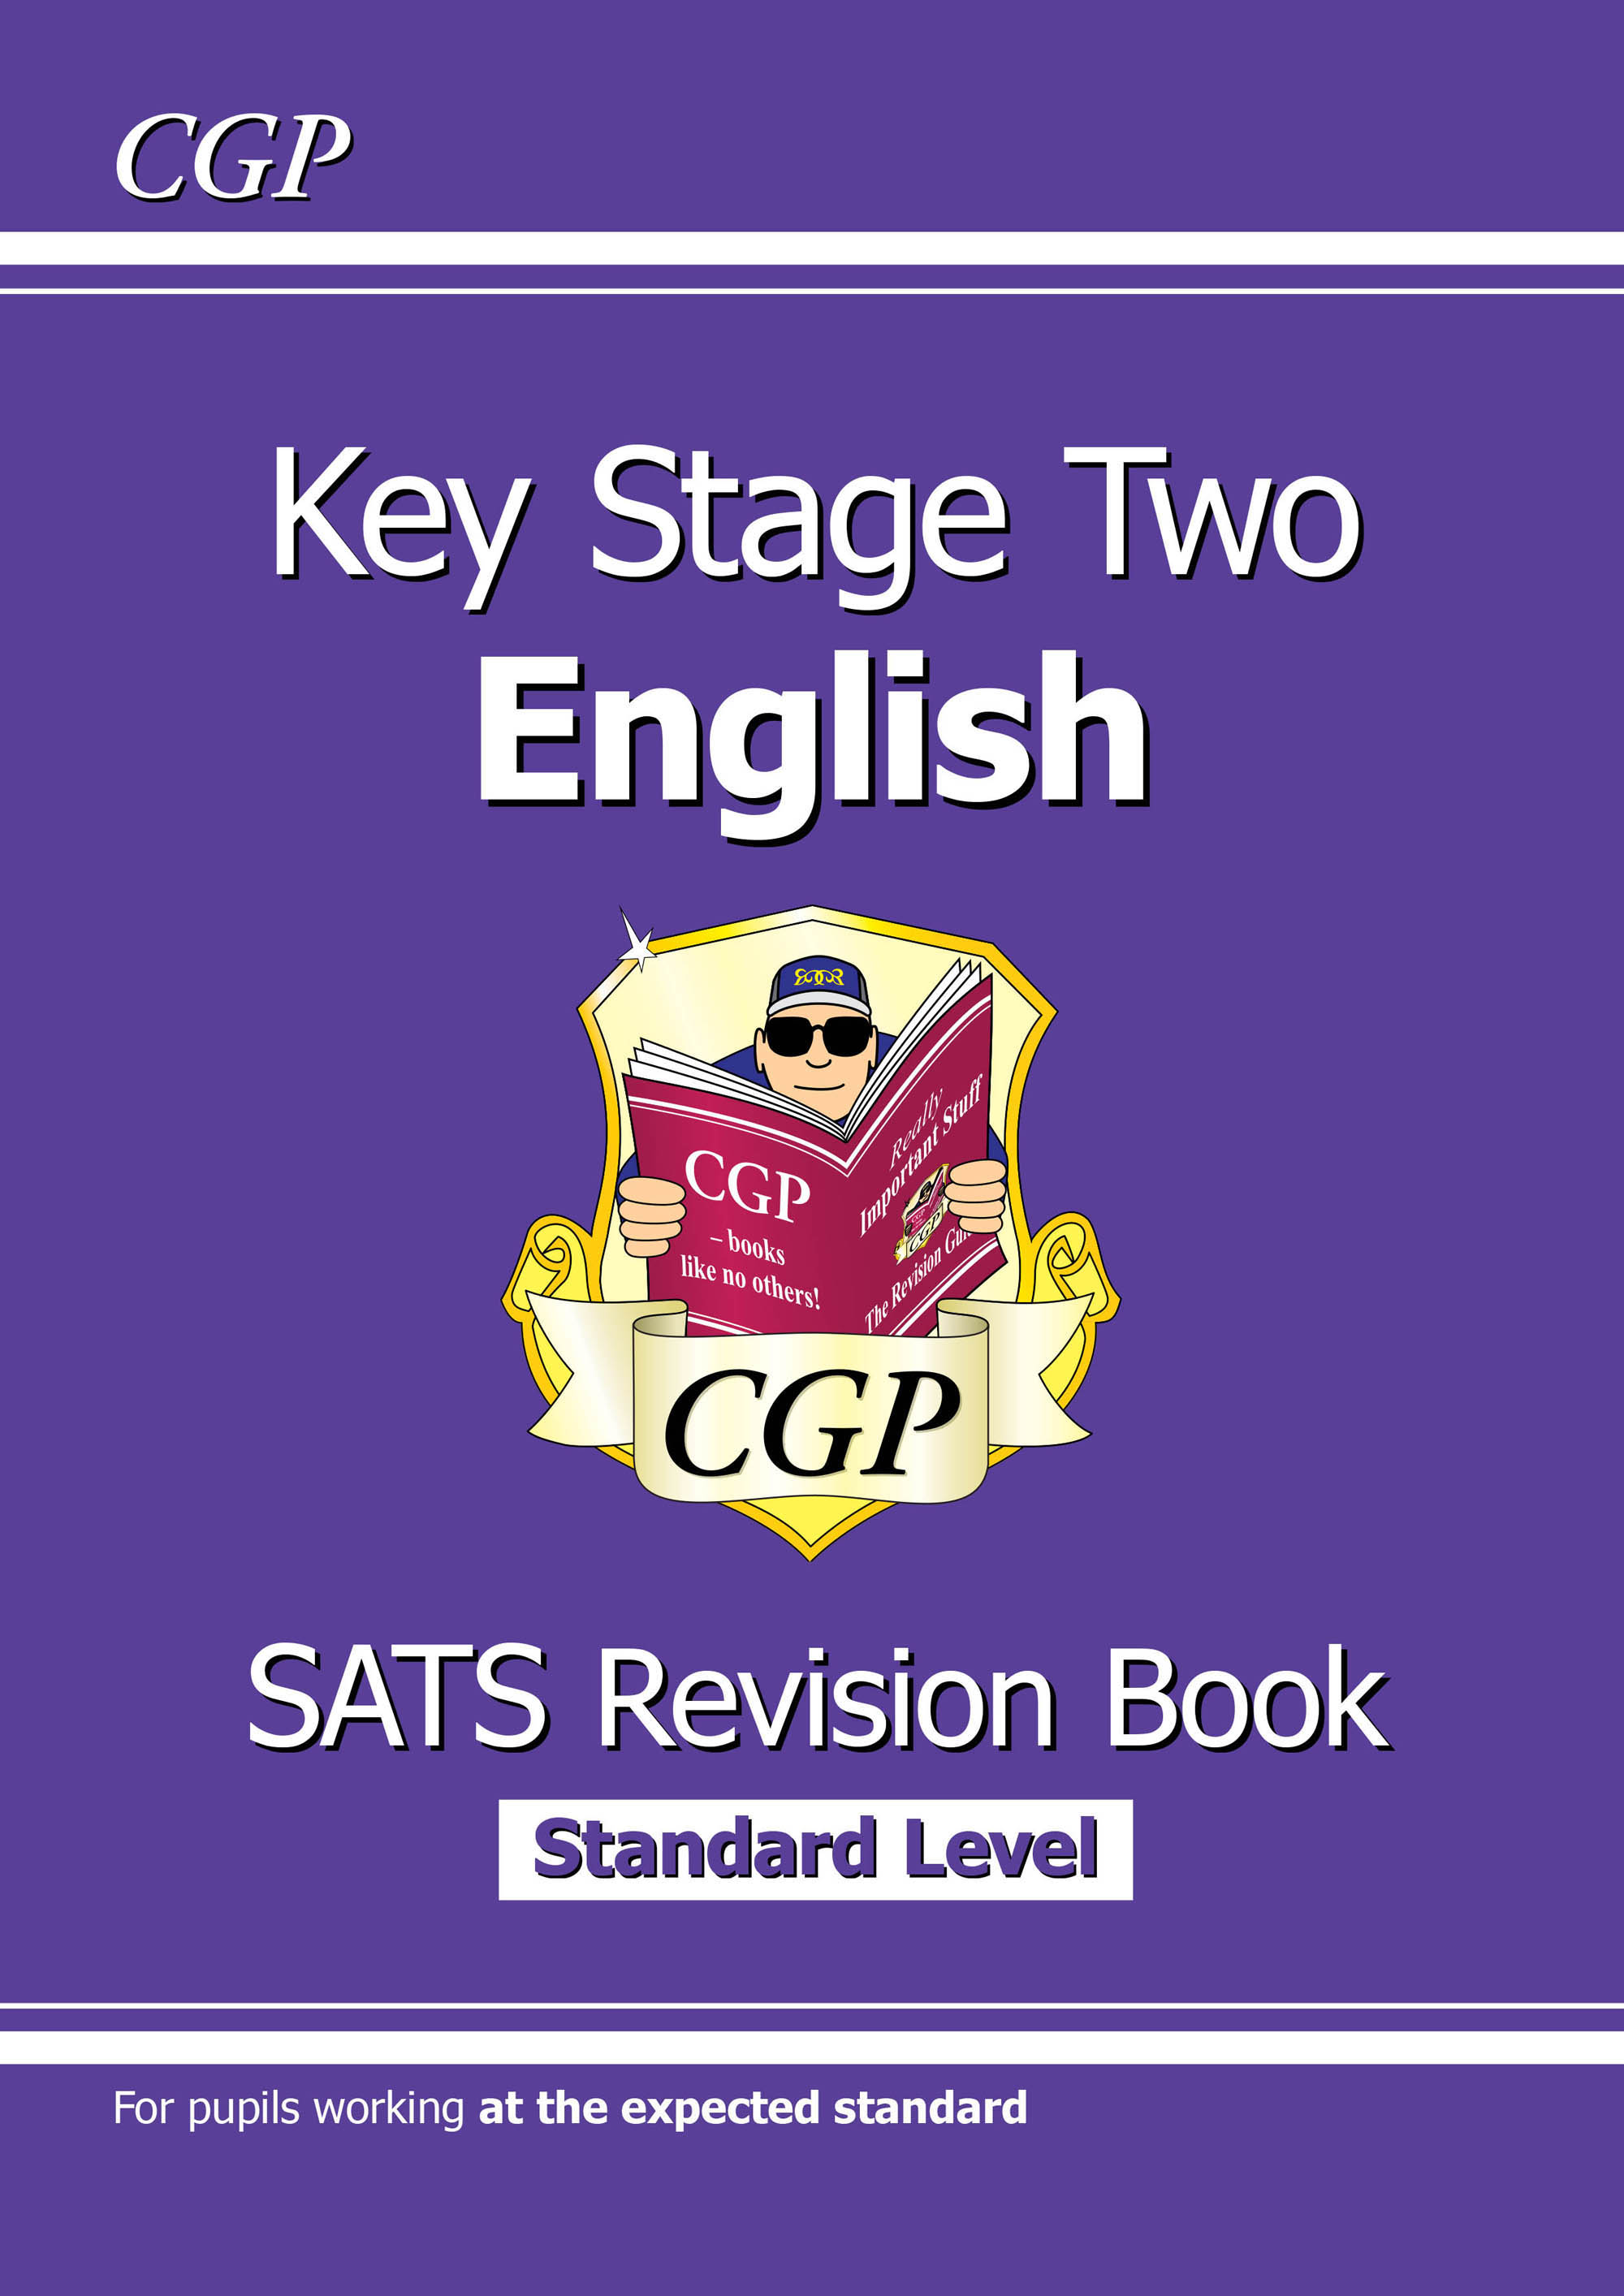 E6FR22DK - New KS2 English Targeted SATS Revision Book - Standard Level (for tests in 2018 and beyon